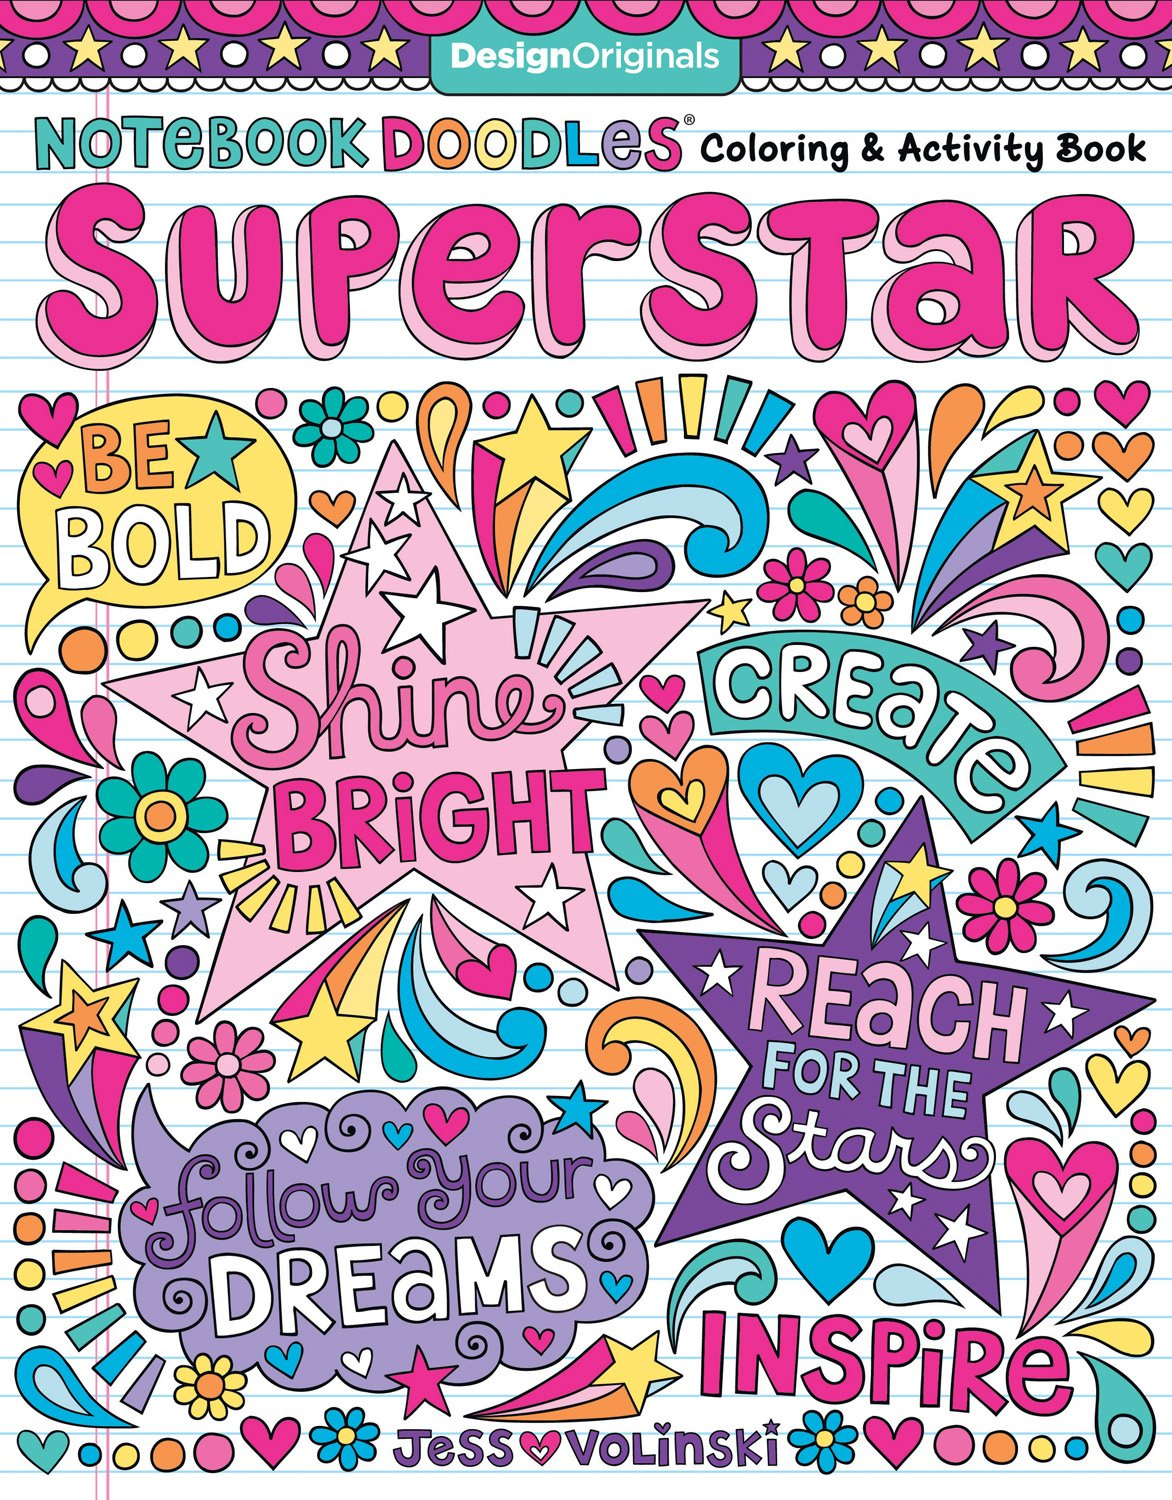 Read Online Notebook Doodles Superstar: Coloring & Activity Book (Design Originals) 32 Inspiring Designs; Beginner-Friendly Relaxing & Empowering Art Activities for Tweens, on Extra-Thick Perforated Pages pdf epub